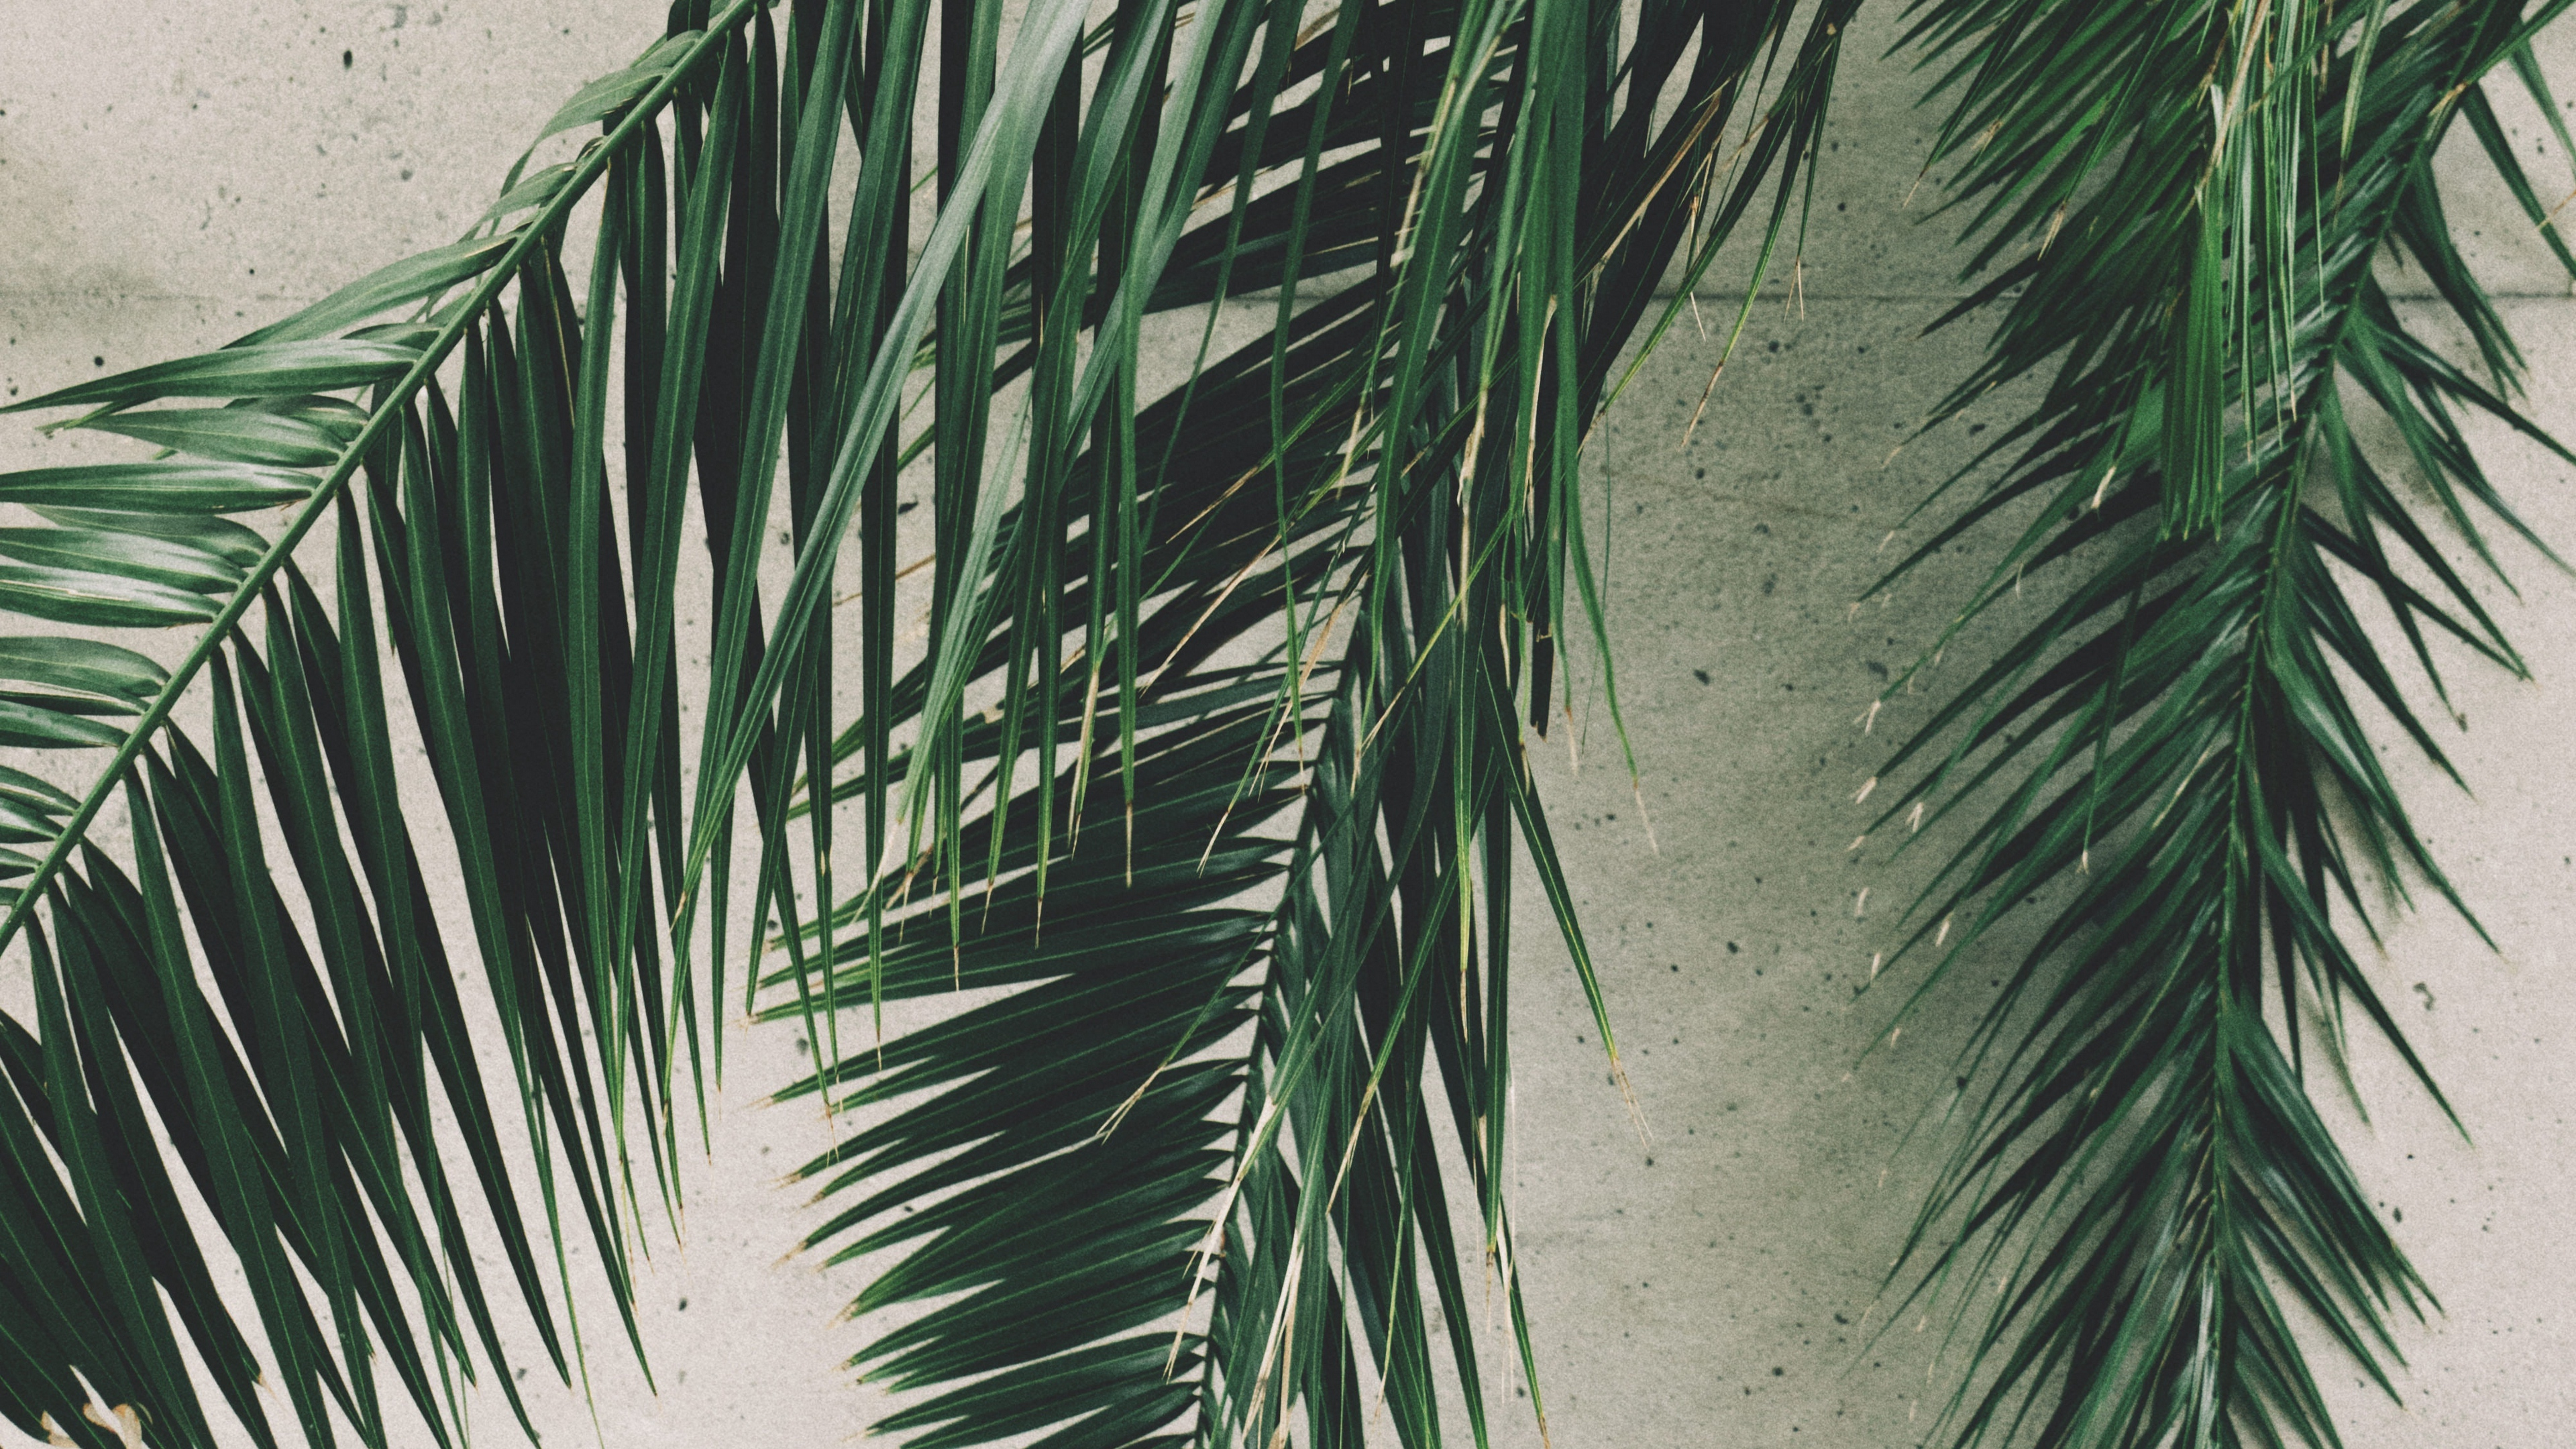 leaves palm branches wall 4k 1541116806 - leaves, palm, branches, wall 4k - Palm, Leaves, branches